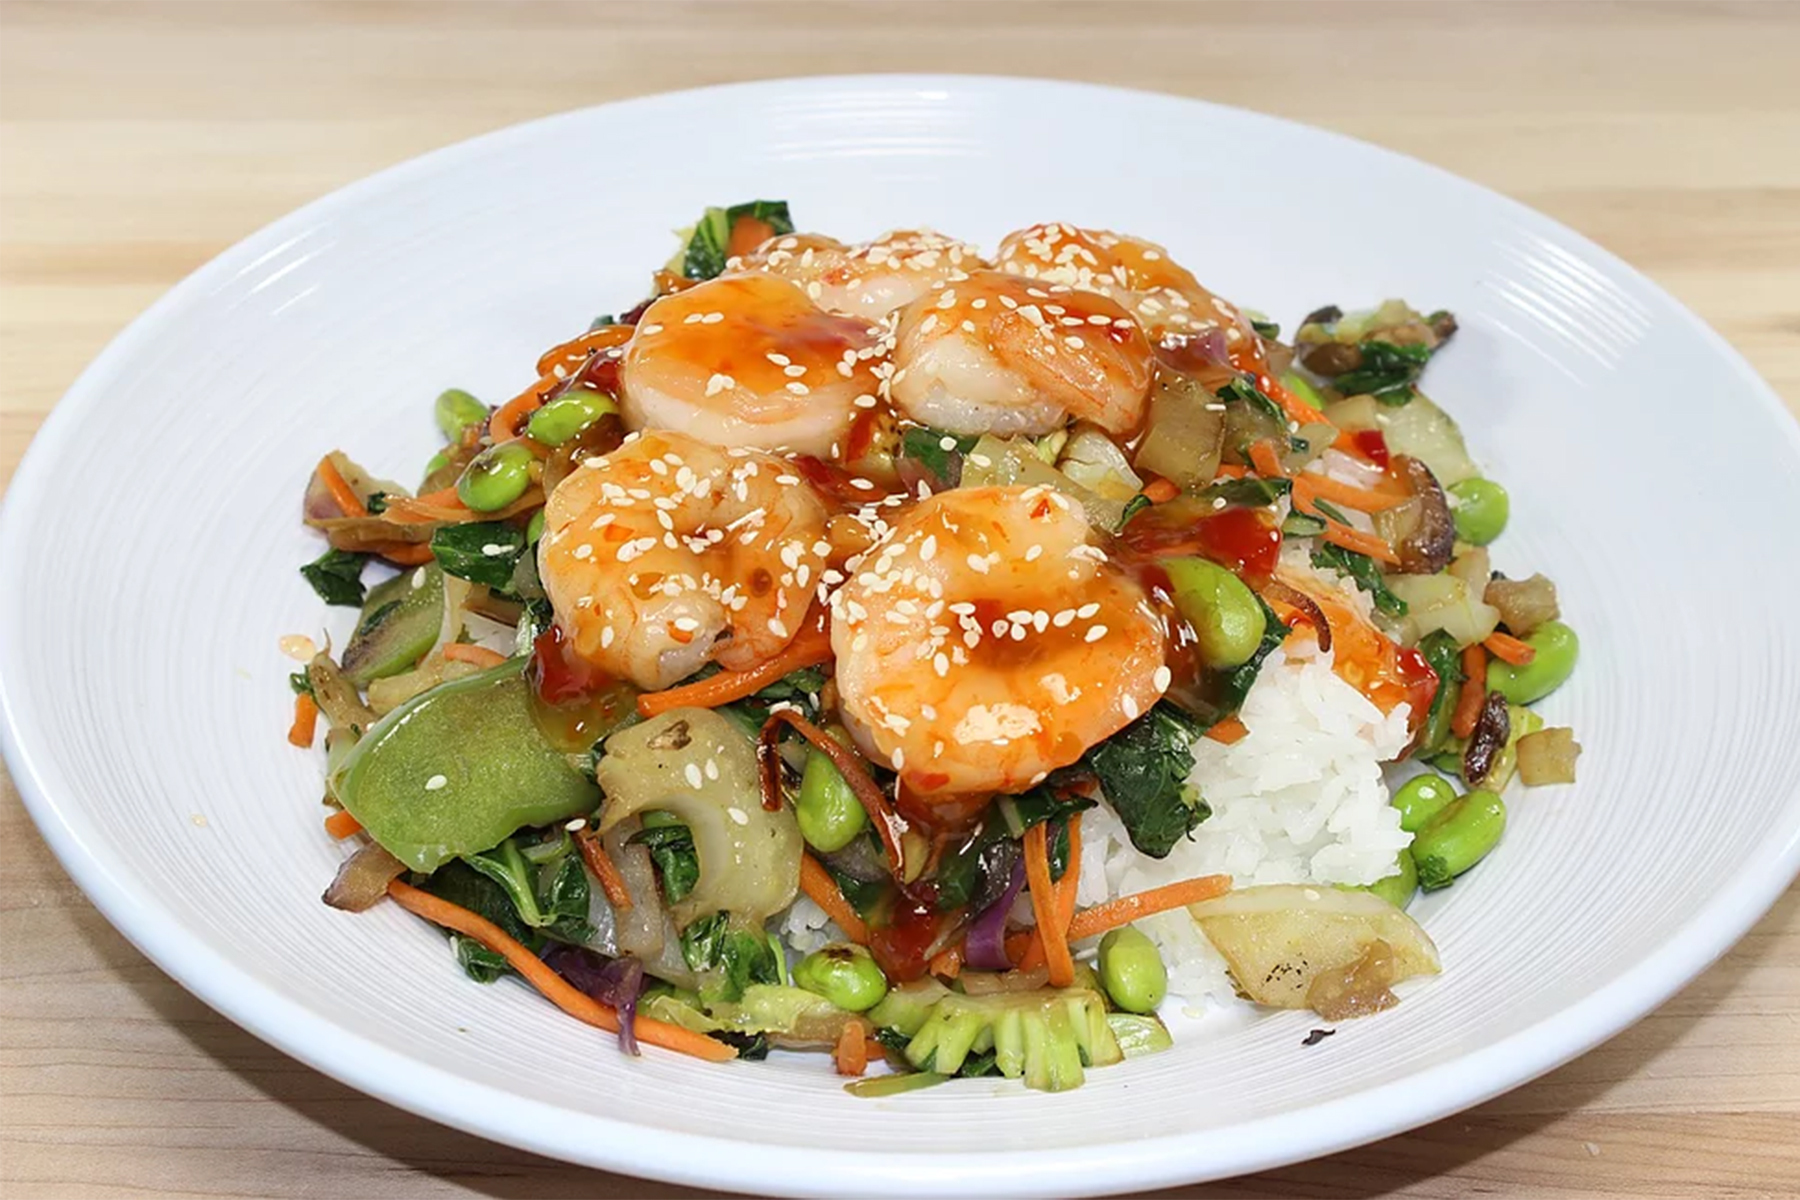 Sweet Chile shrimp bowl with rice and stir fried vegetables